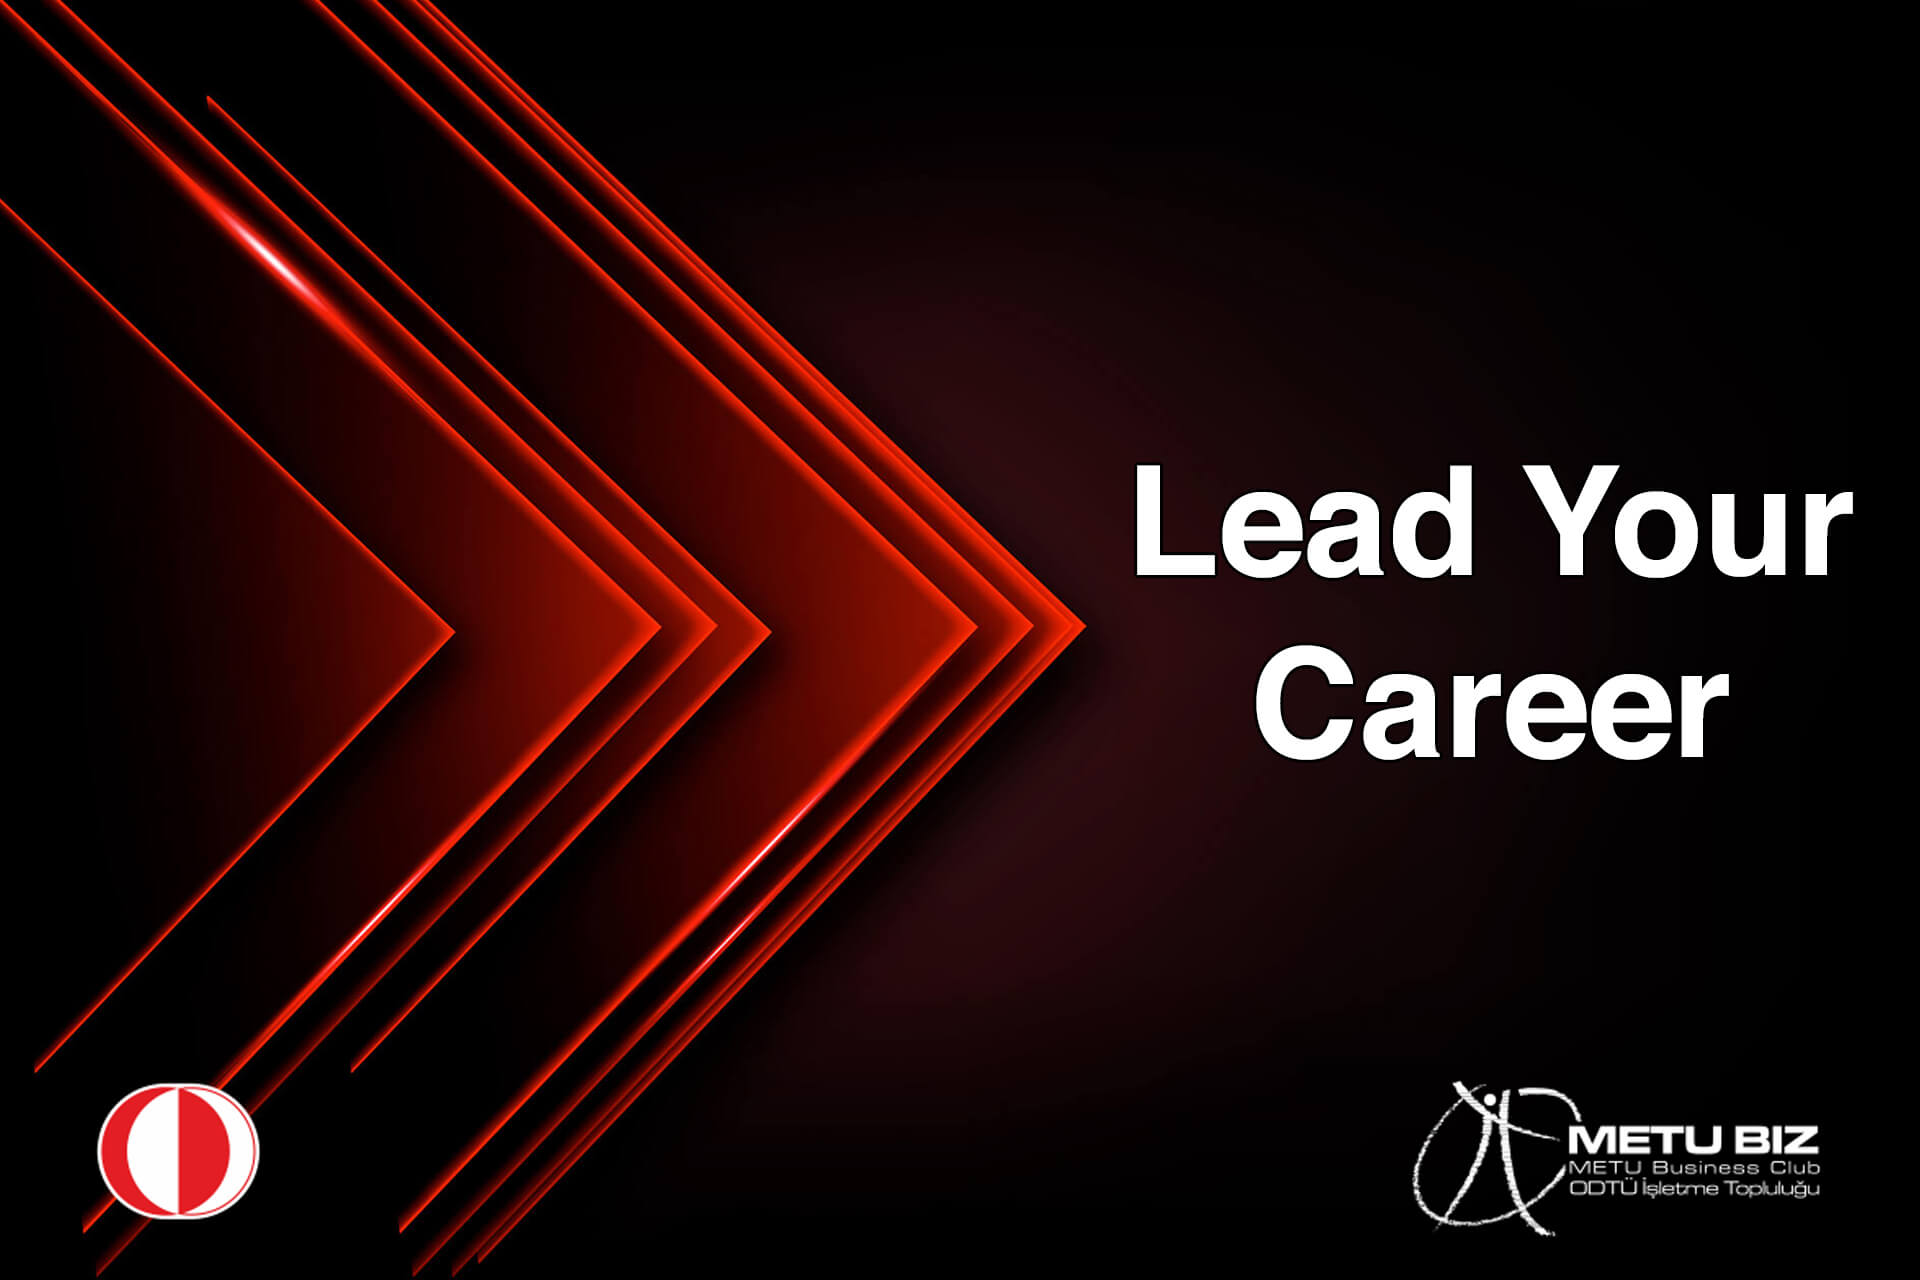 Lead Your Career